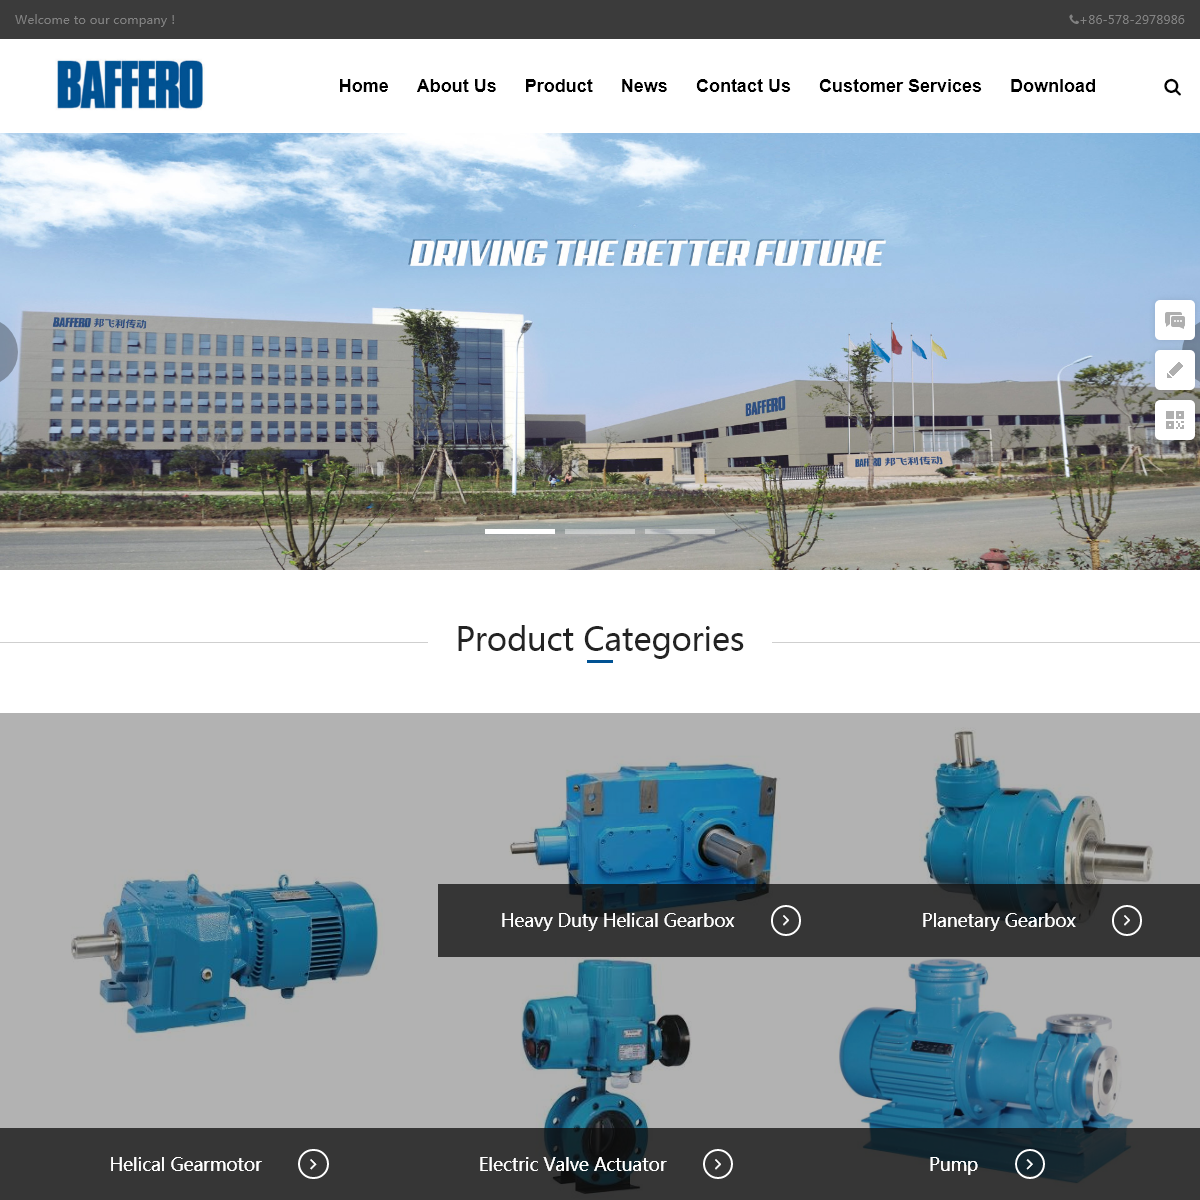 China Helical Gearmotor, Heavy Duty Helical Gearbox, Planetary Gearbox Manufacturers, Suppliers, Factory - BAFFERO